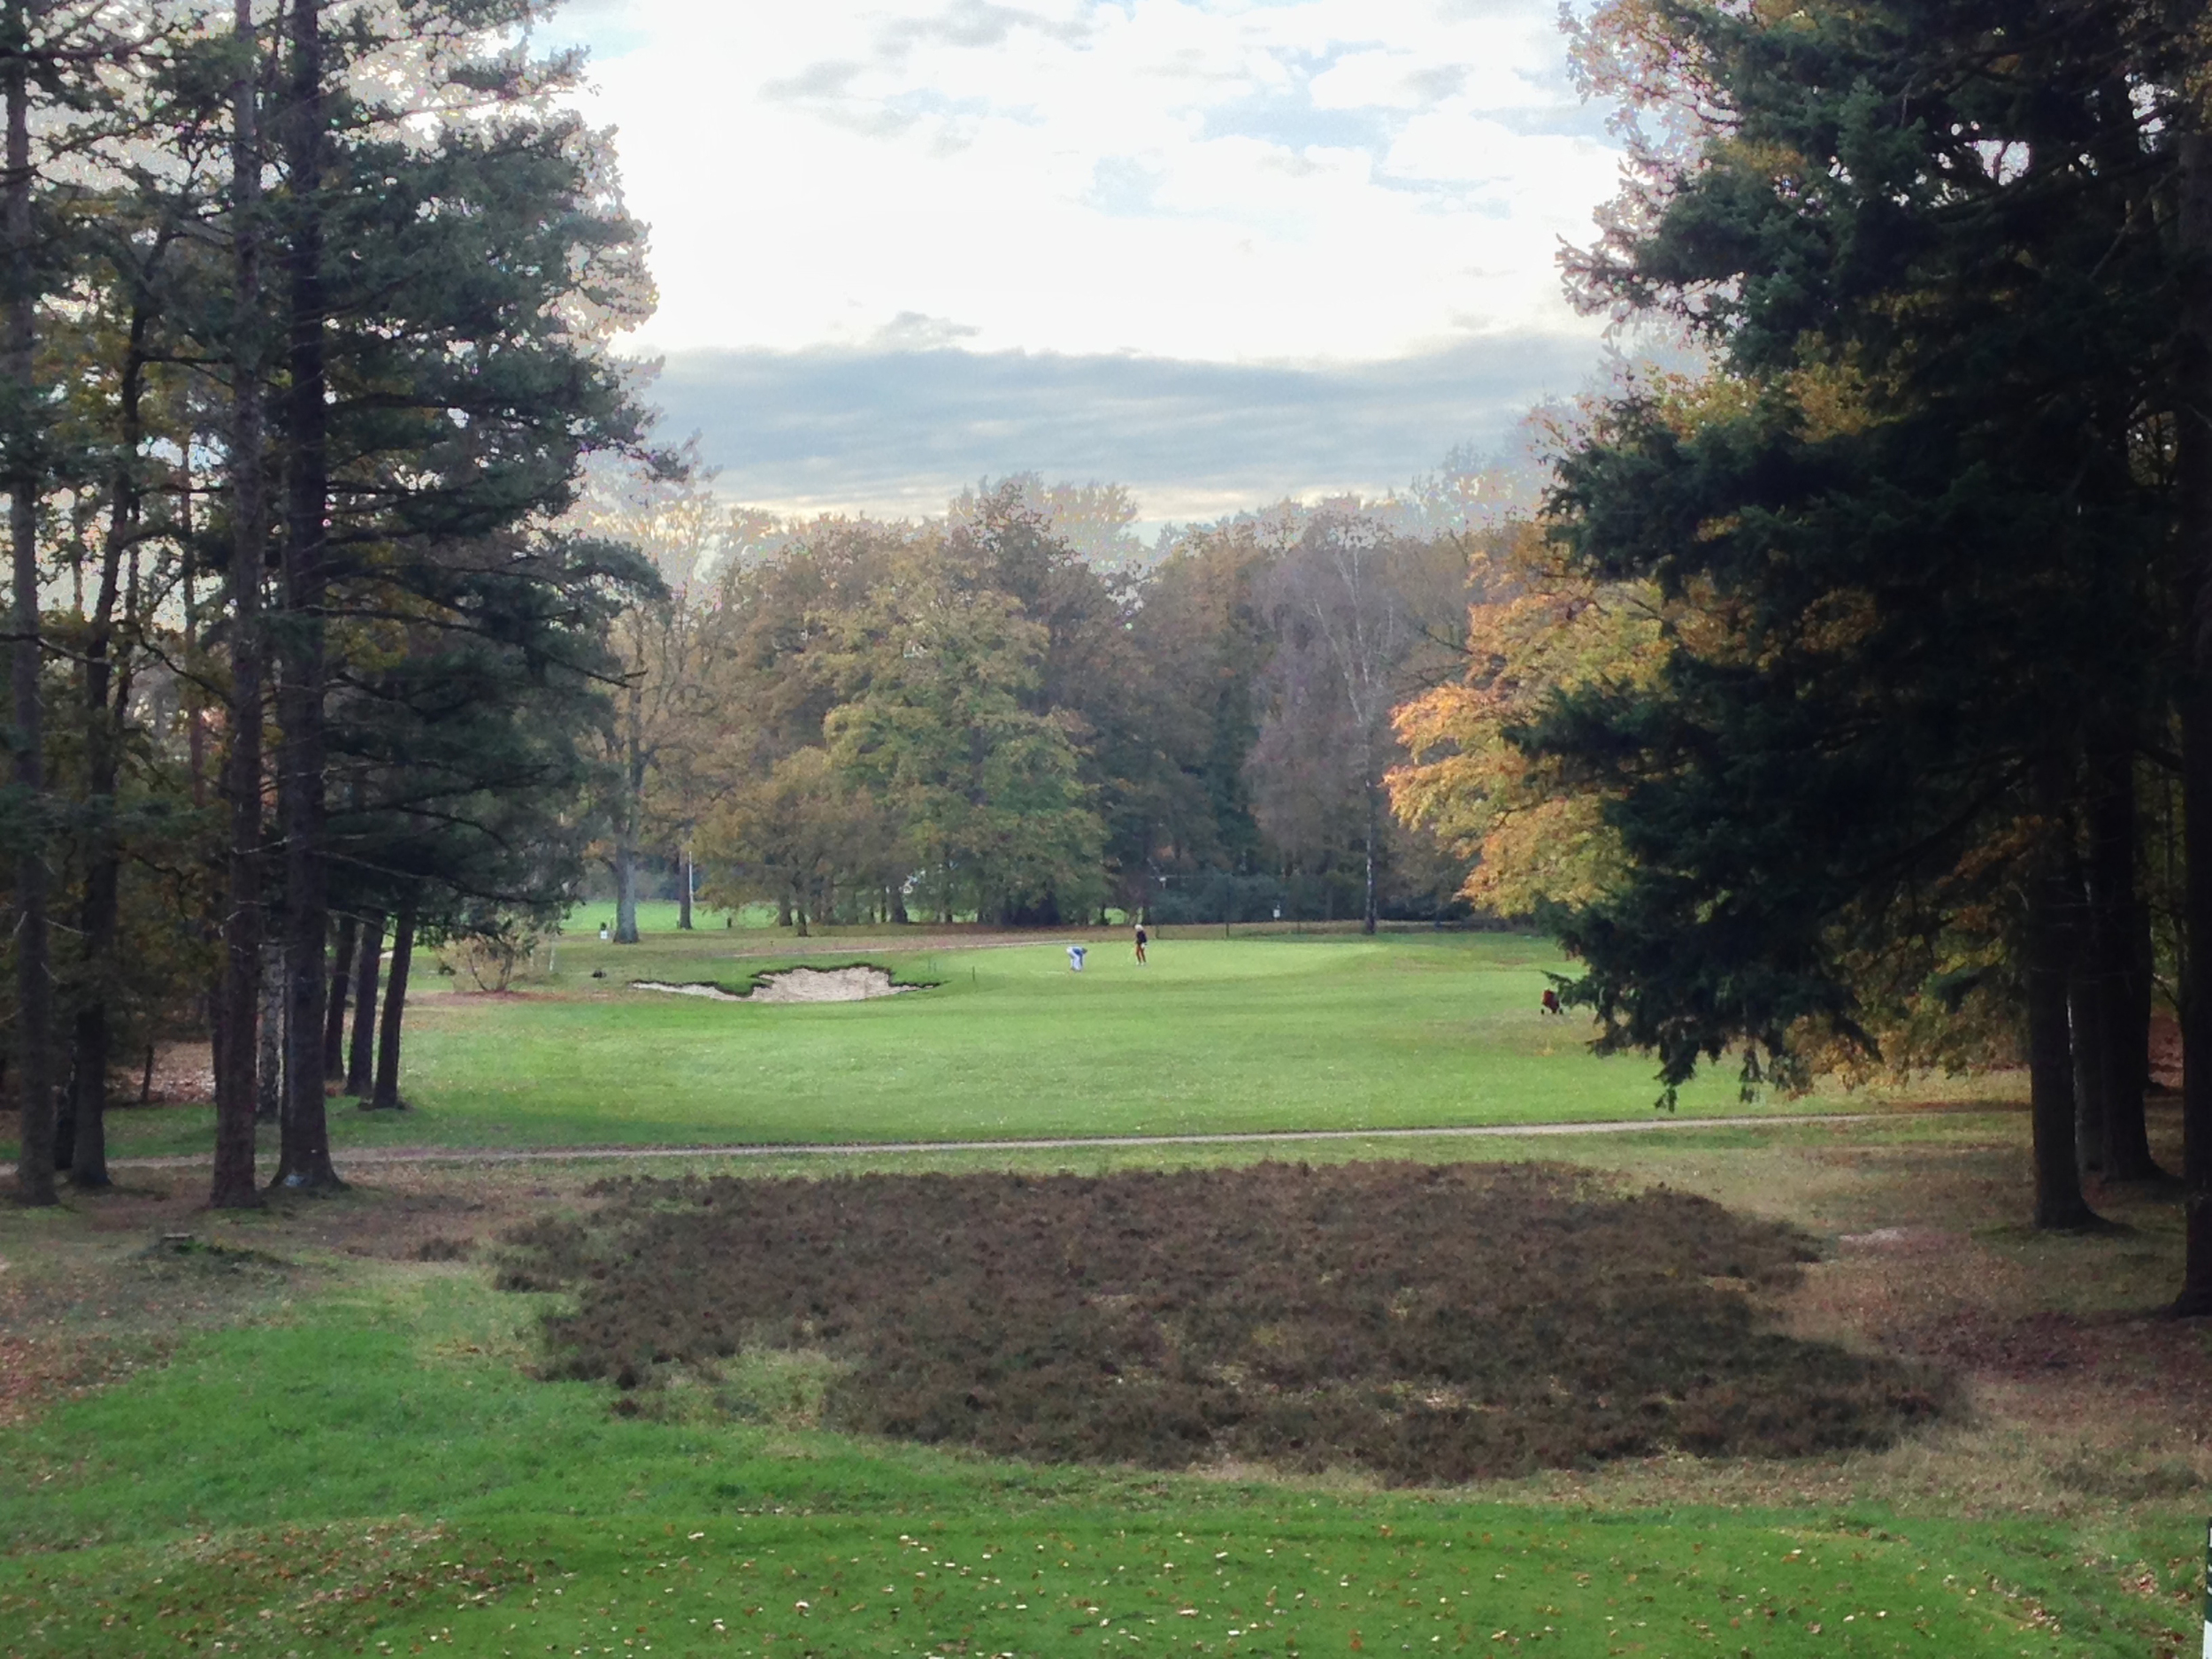 Hole 18 after from the tees.